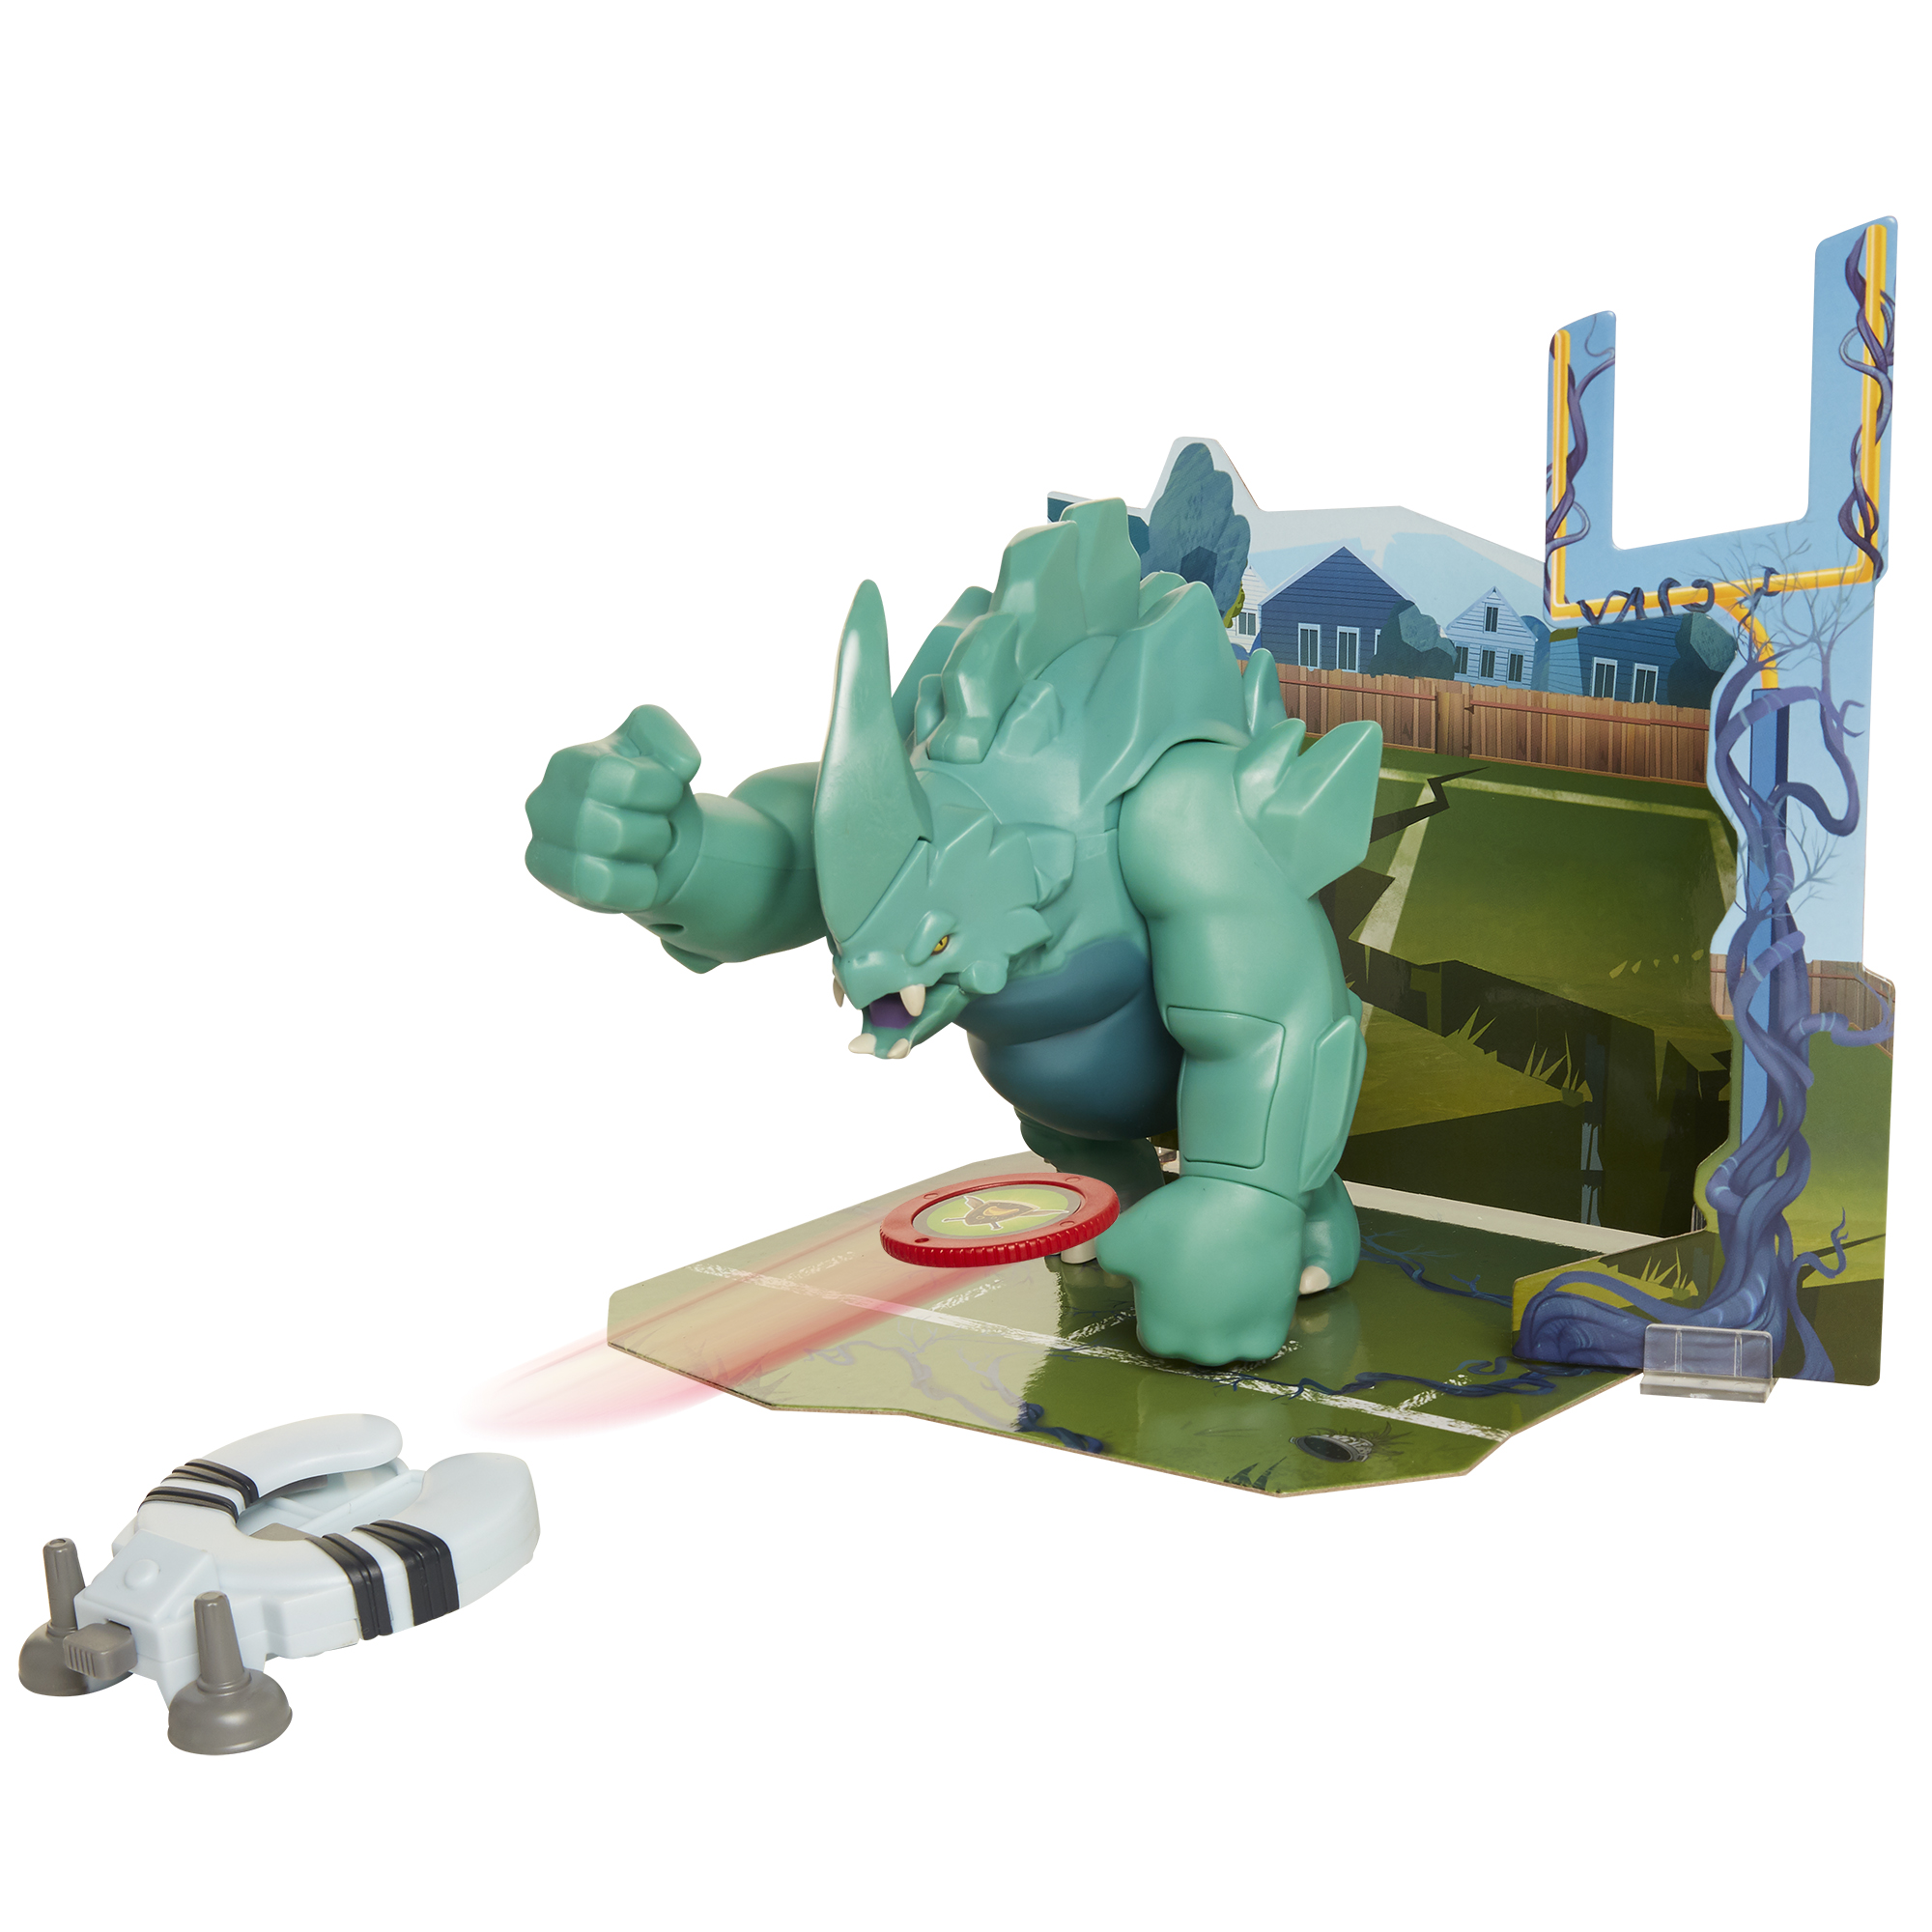 Smashin' Dozer Monster Figure Assortment Wave 1